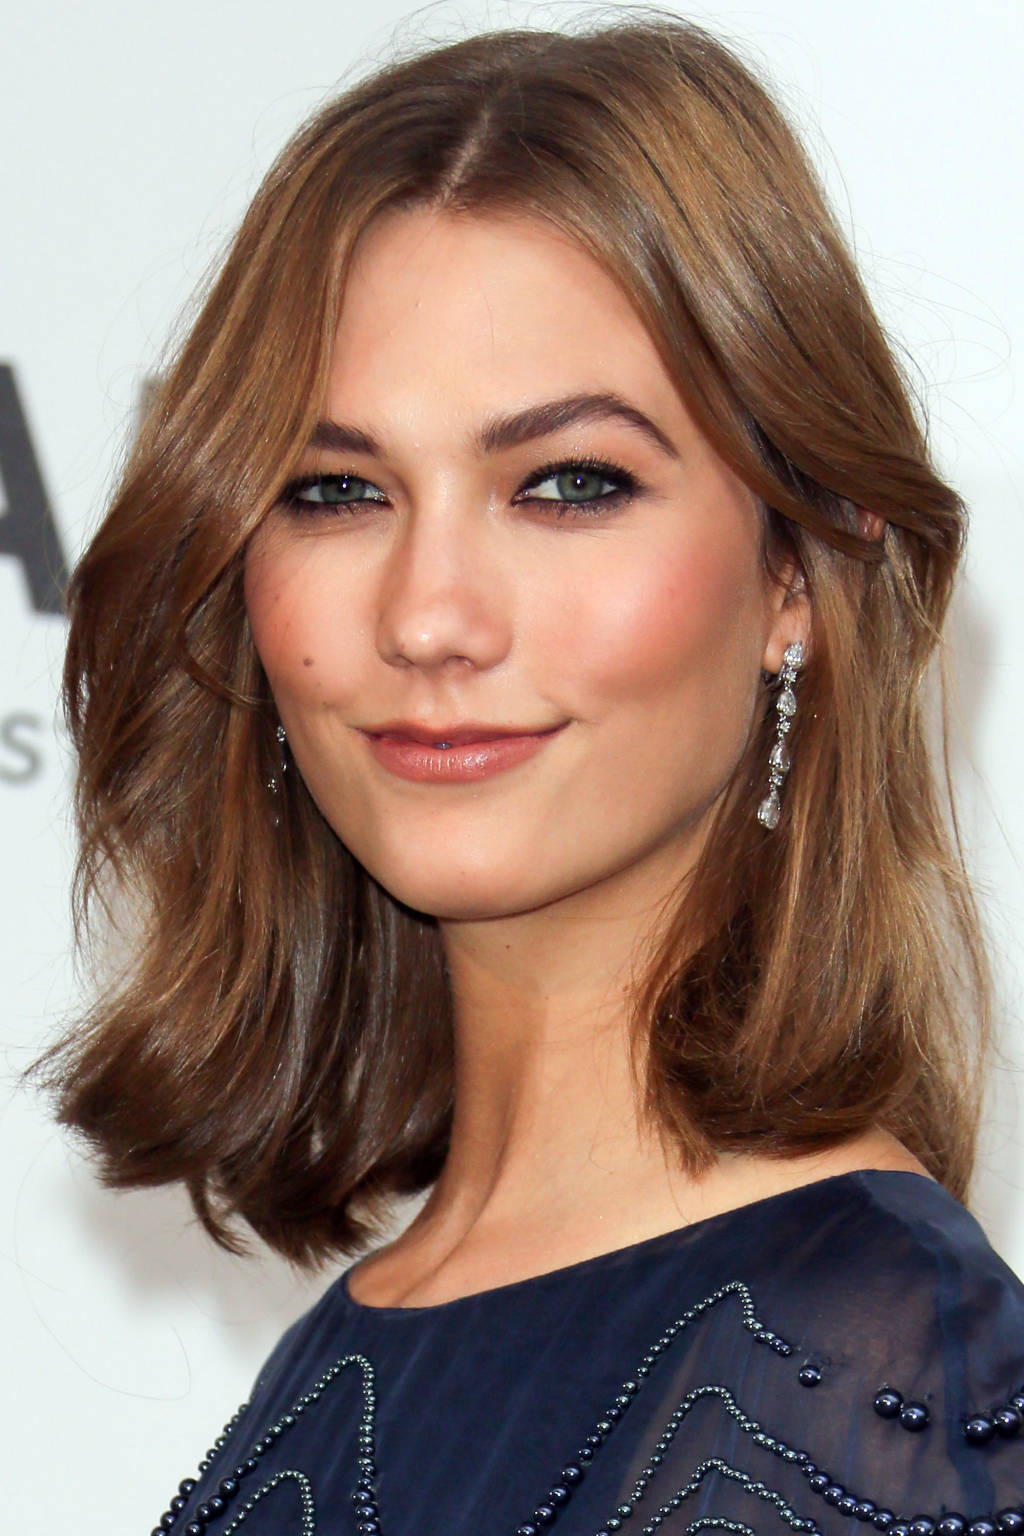 The lob on Karlie Kloss